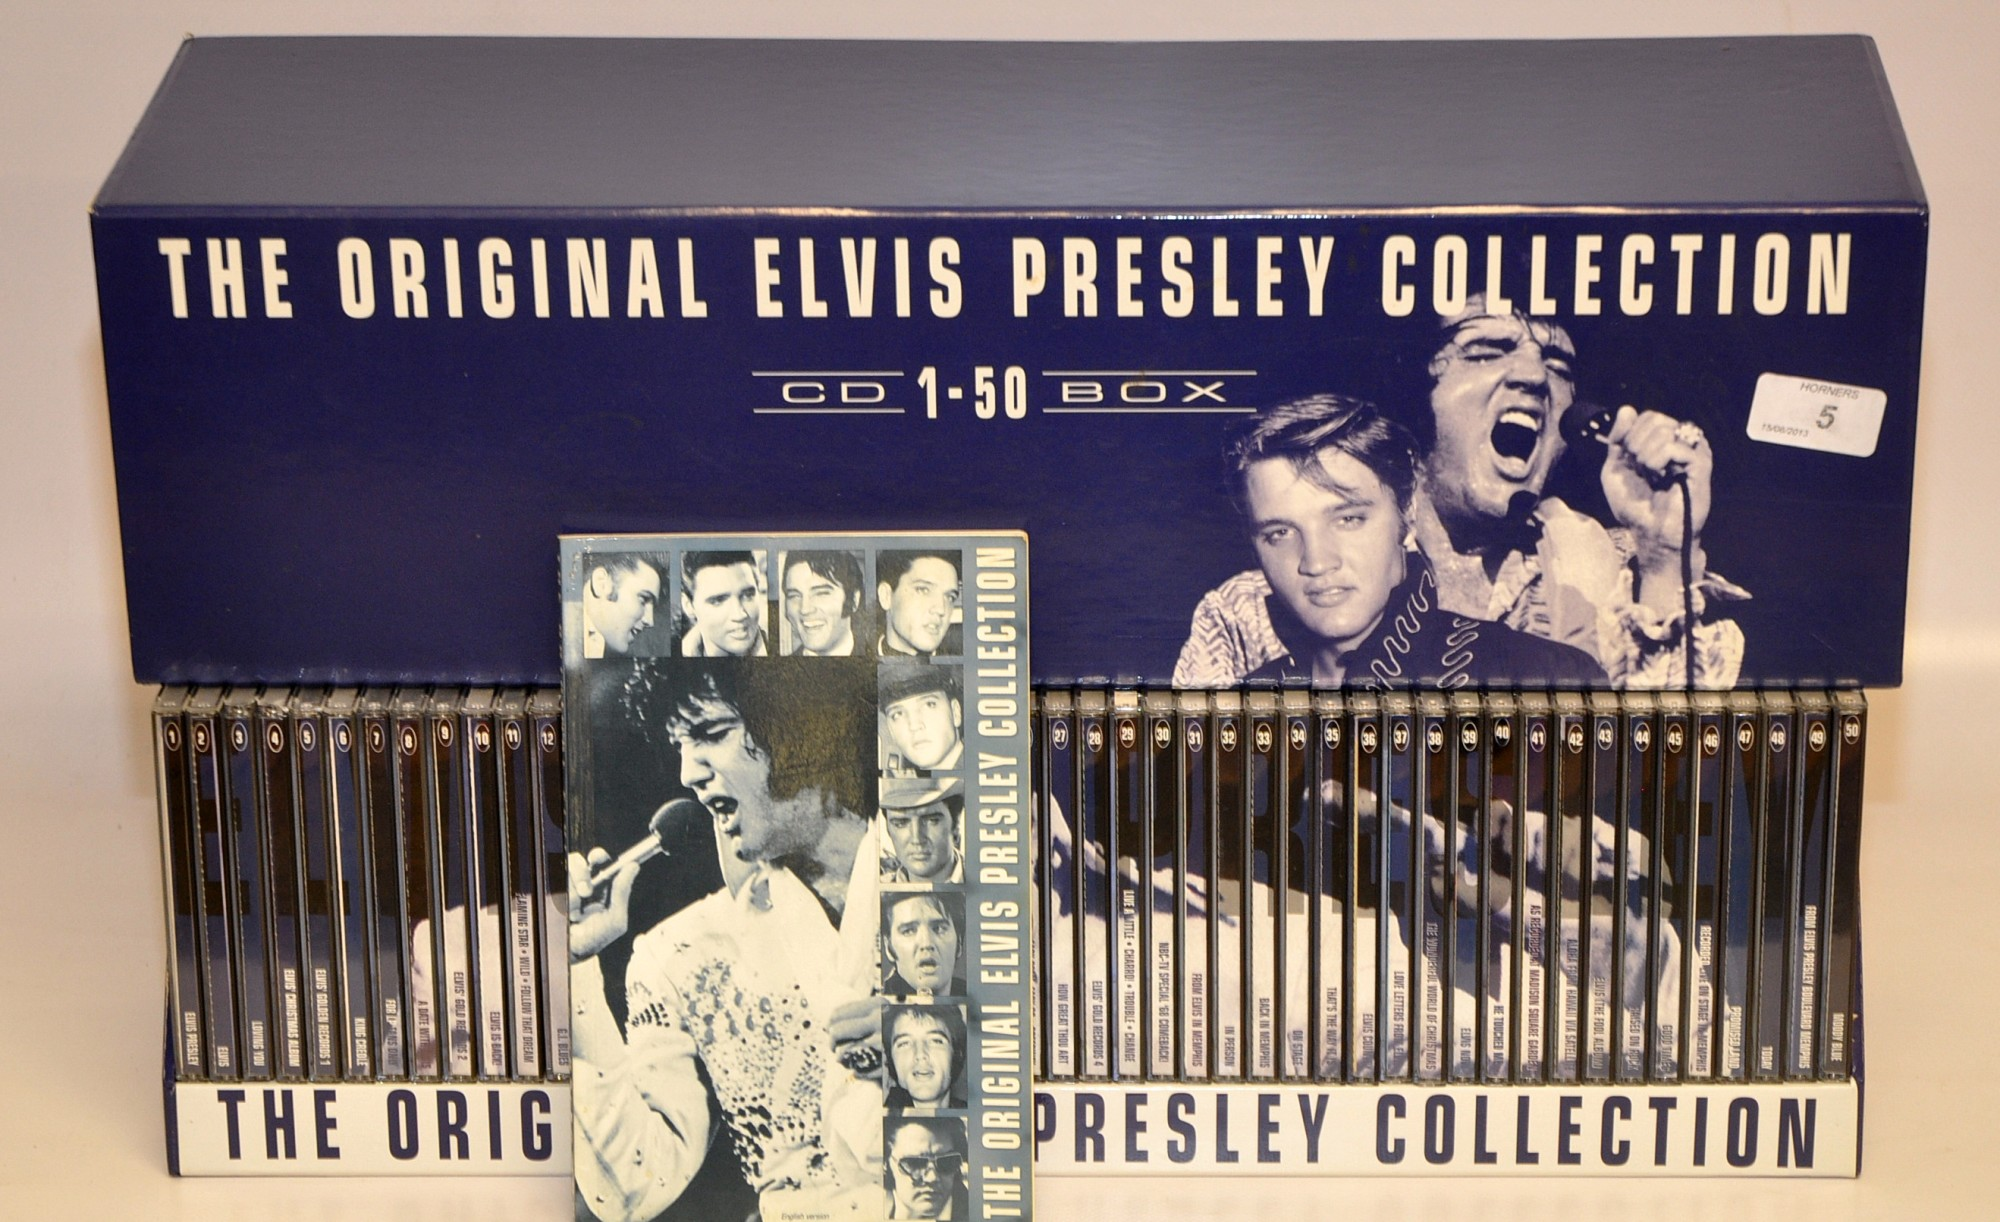 THE ORIGINAL ELVIS PRESLEY COLLECTION 50 CD BOX SET WITH BOOK